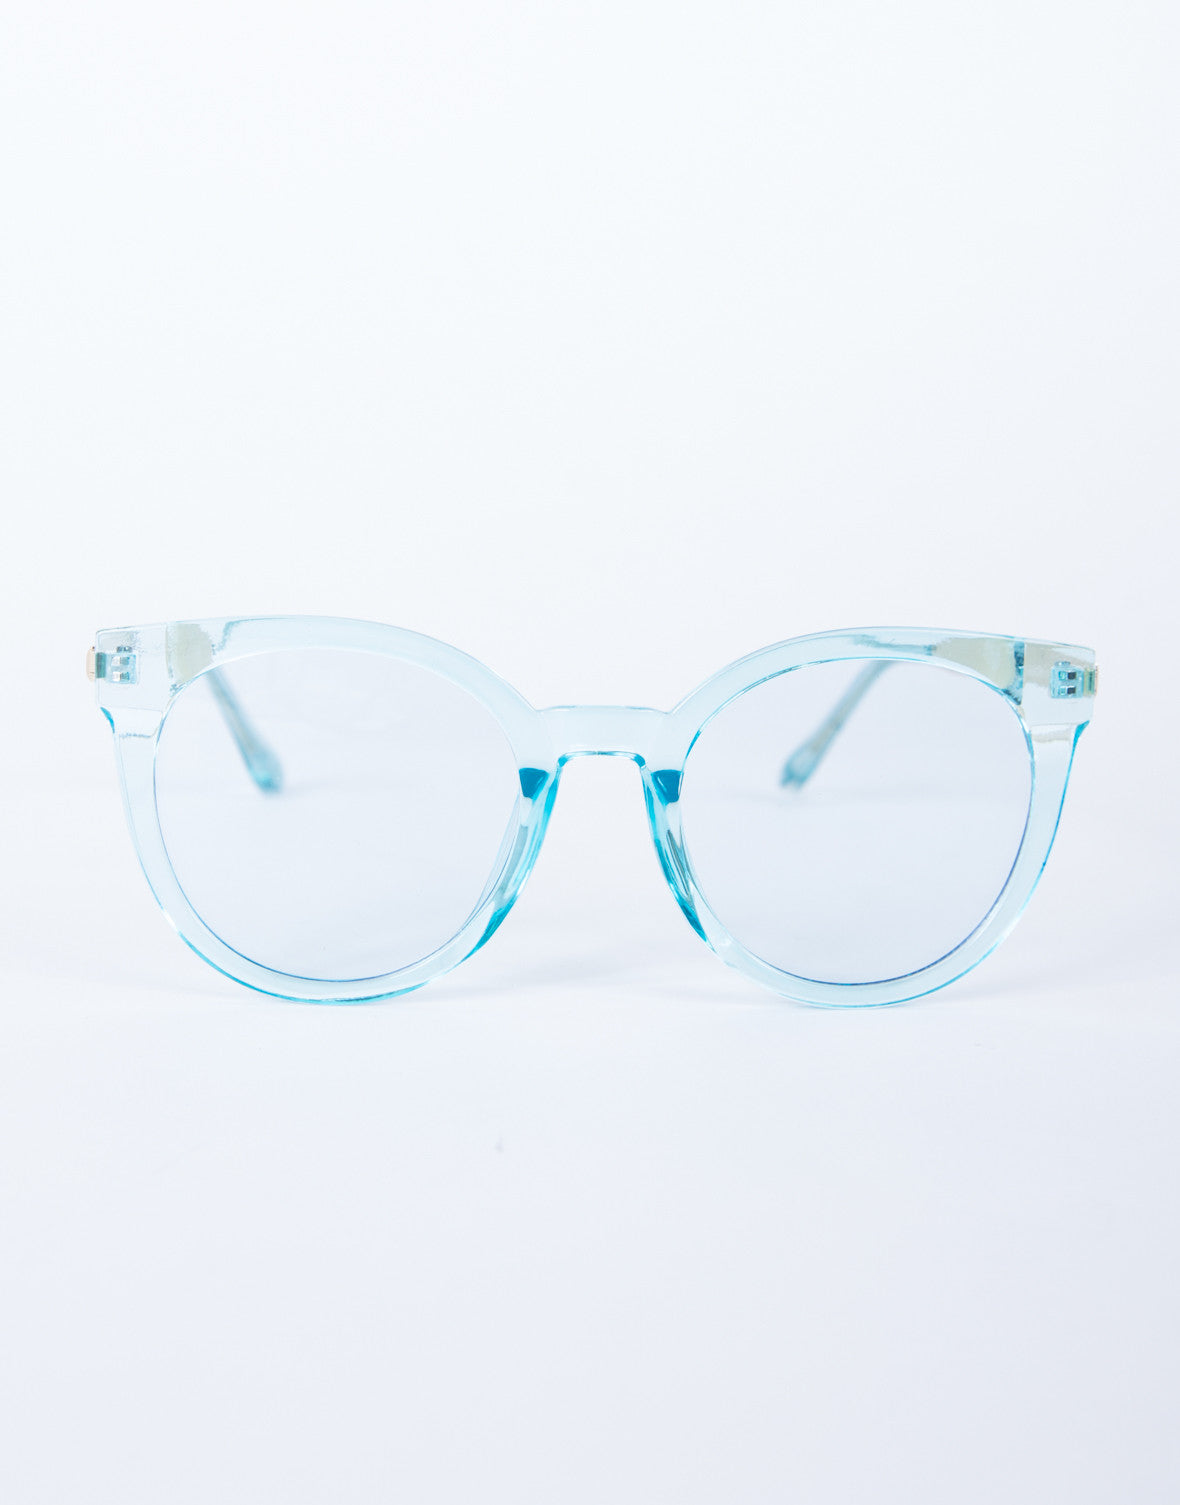 Colored Frame Transparent Glasses - Oversized Sunglasses - Clear ...